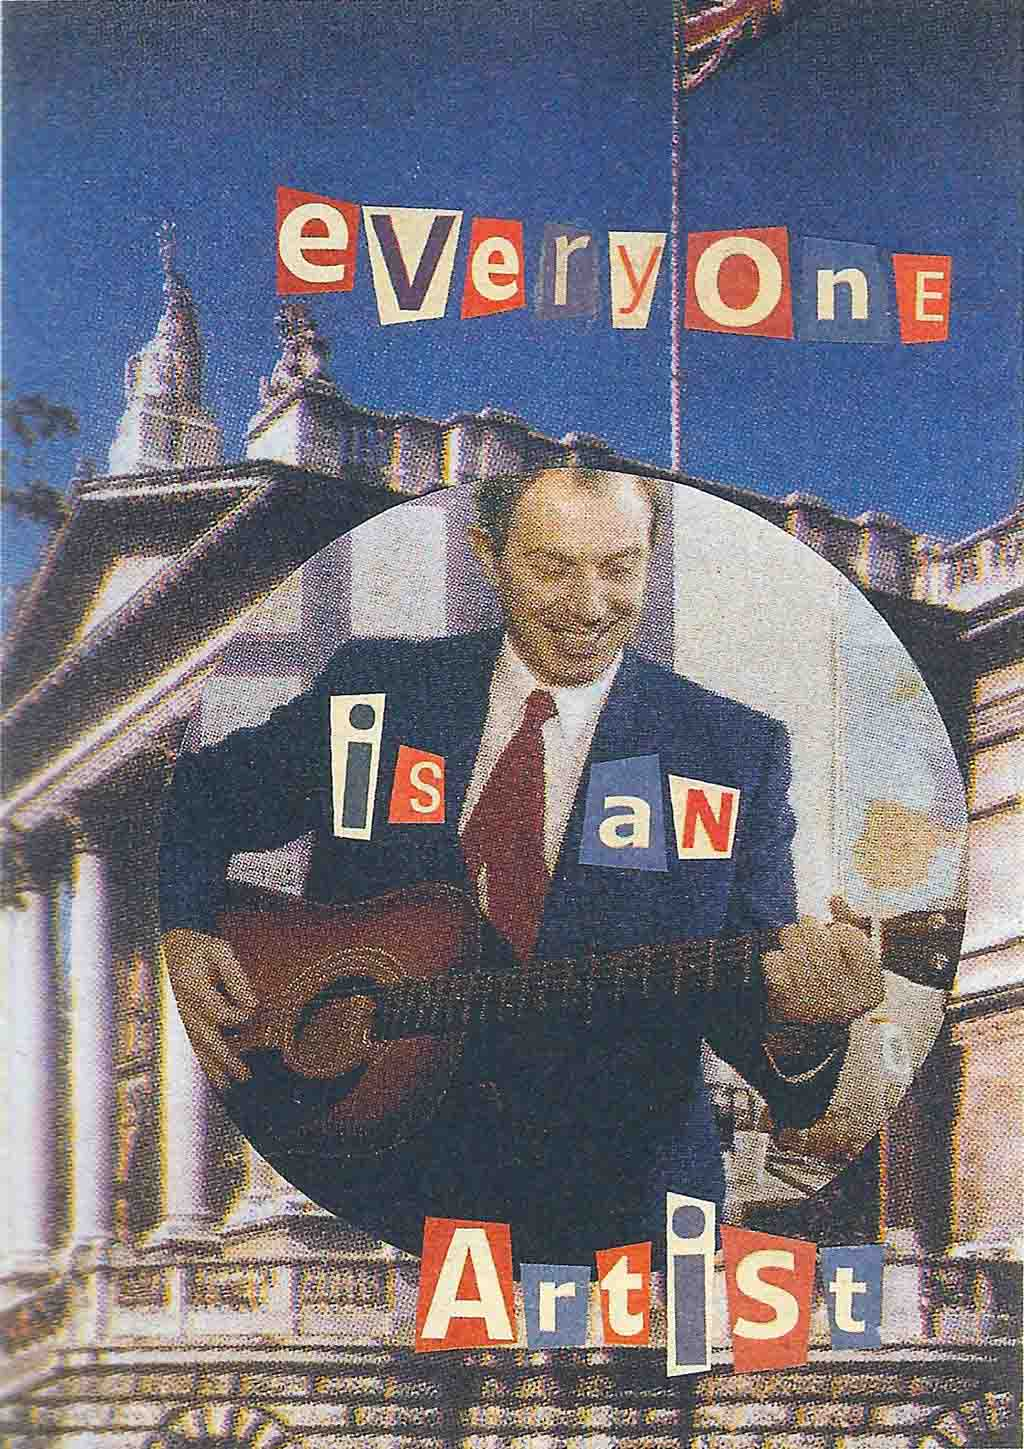 Party Time / Everyone is an Artist 1999